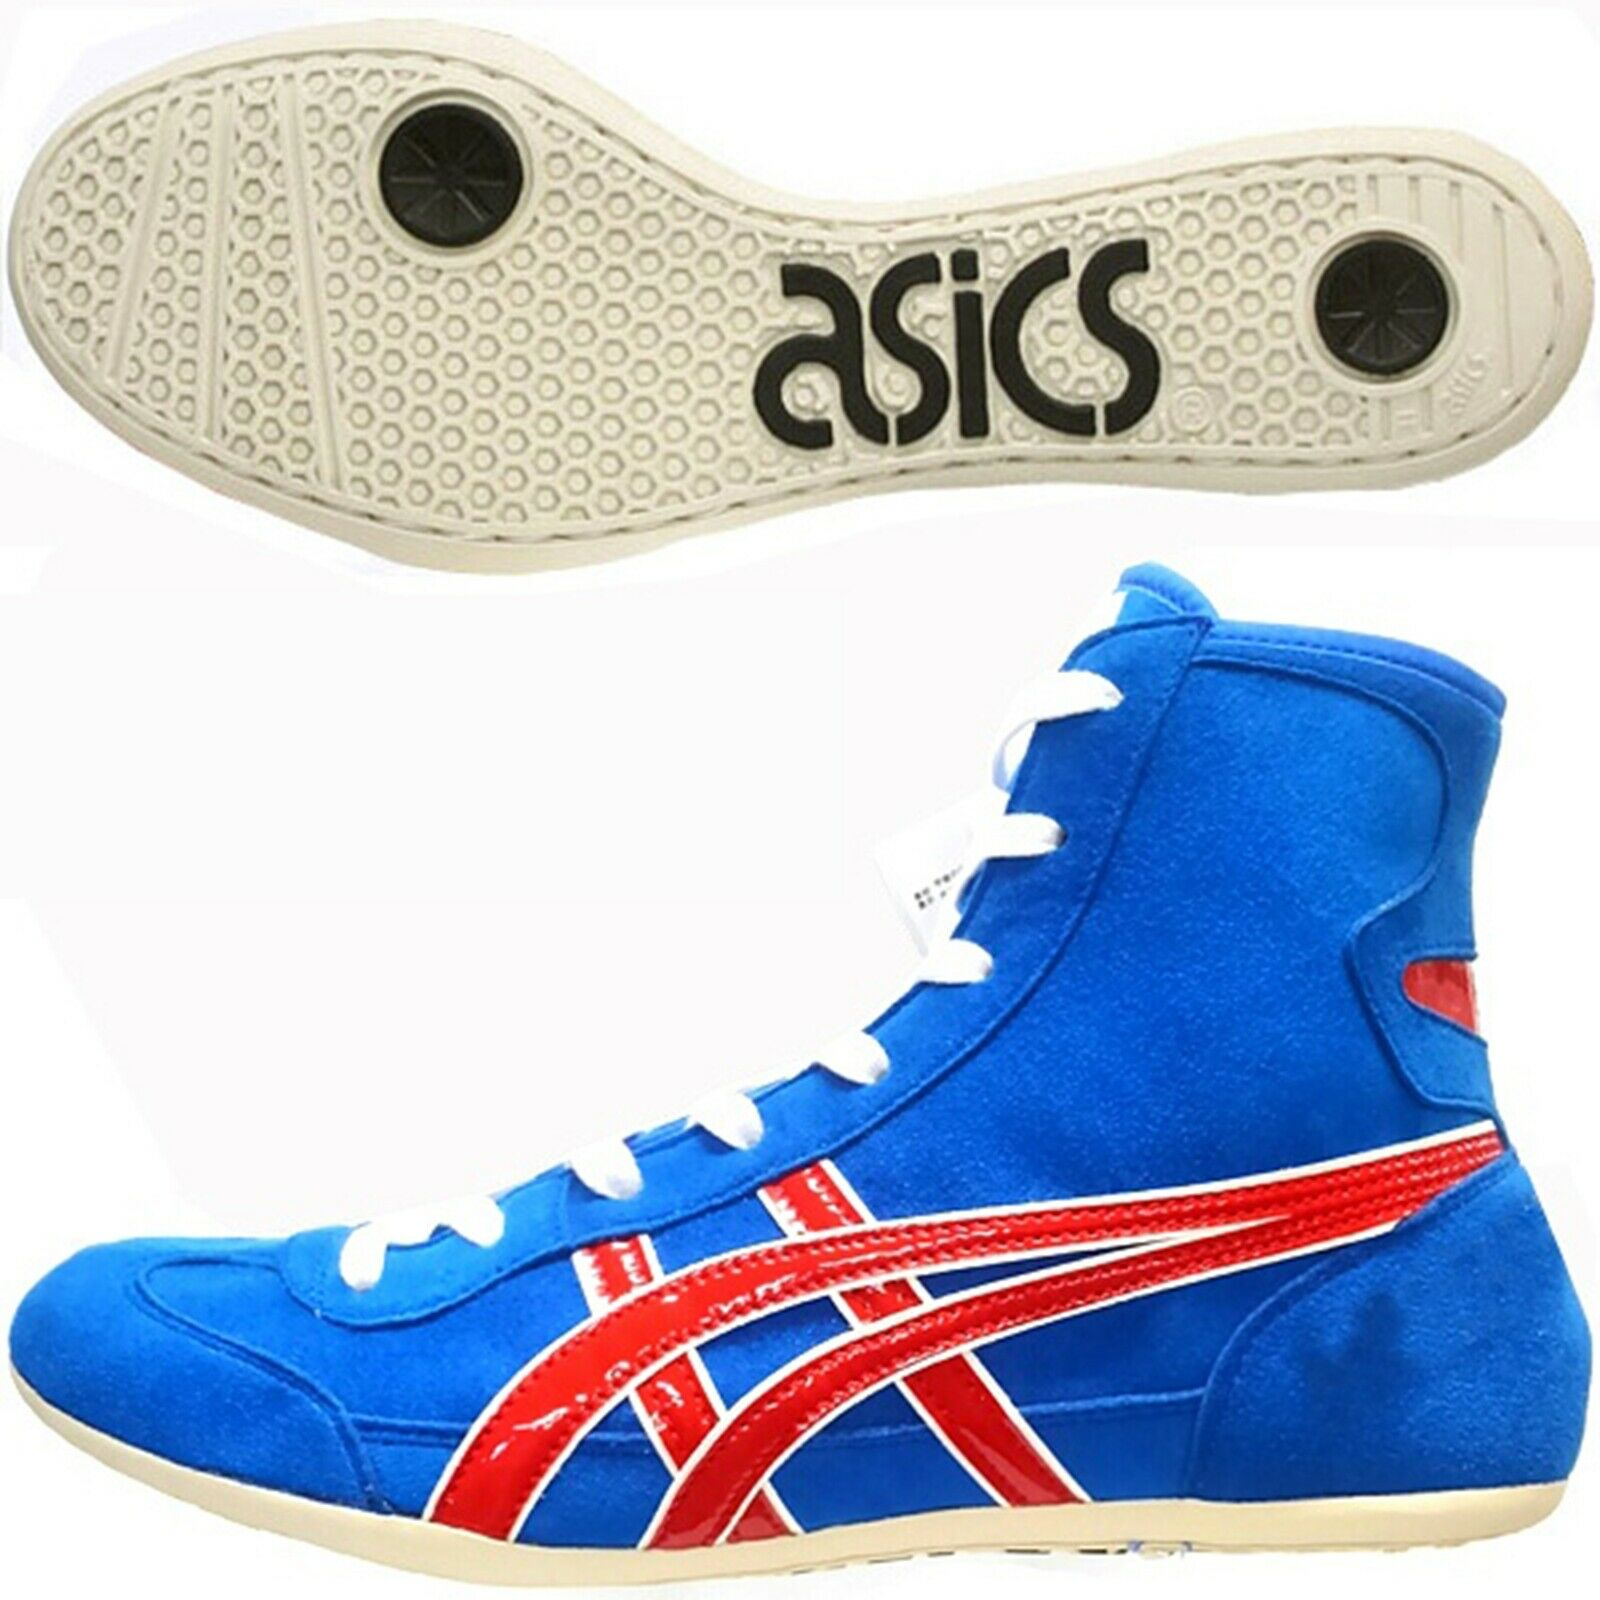 59c2a6dac4 ASICS JAPAN Wrestling shoes EX-EO TWR900 blueE RED original color ...